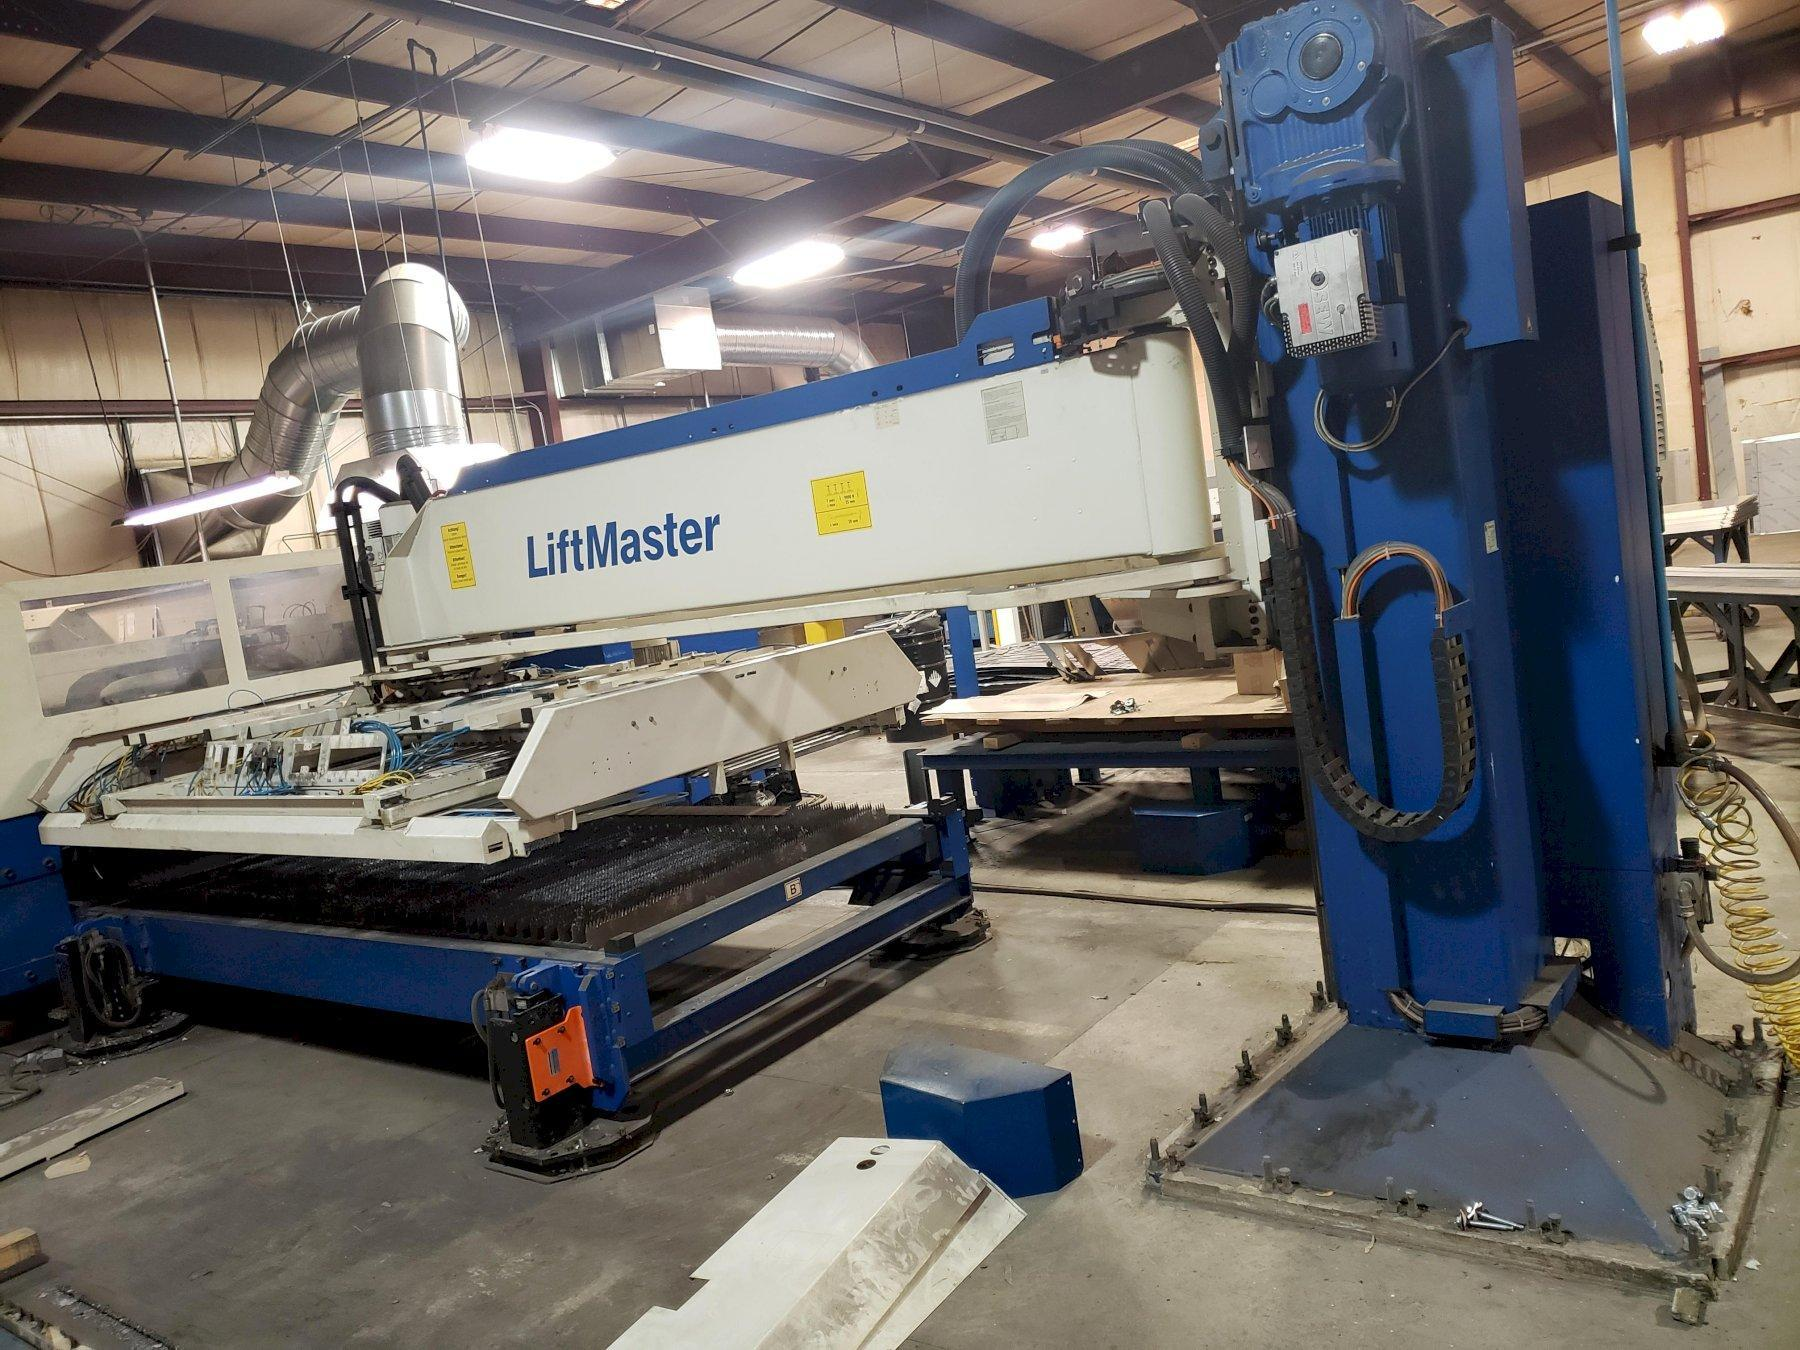 2004 TRUMPF MODEL #  LMZ3050 0556817 LIFTMASTER SHEET LOADING SYSTEM: STOCK 12313